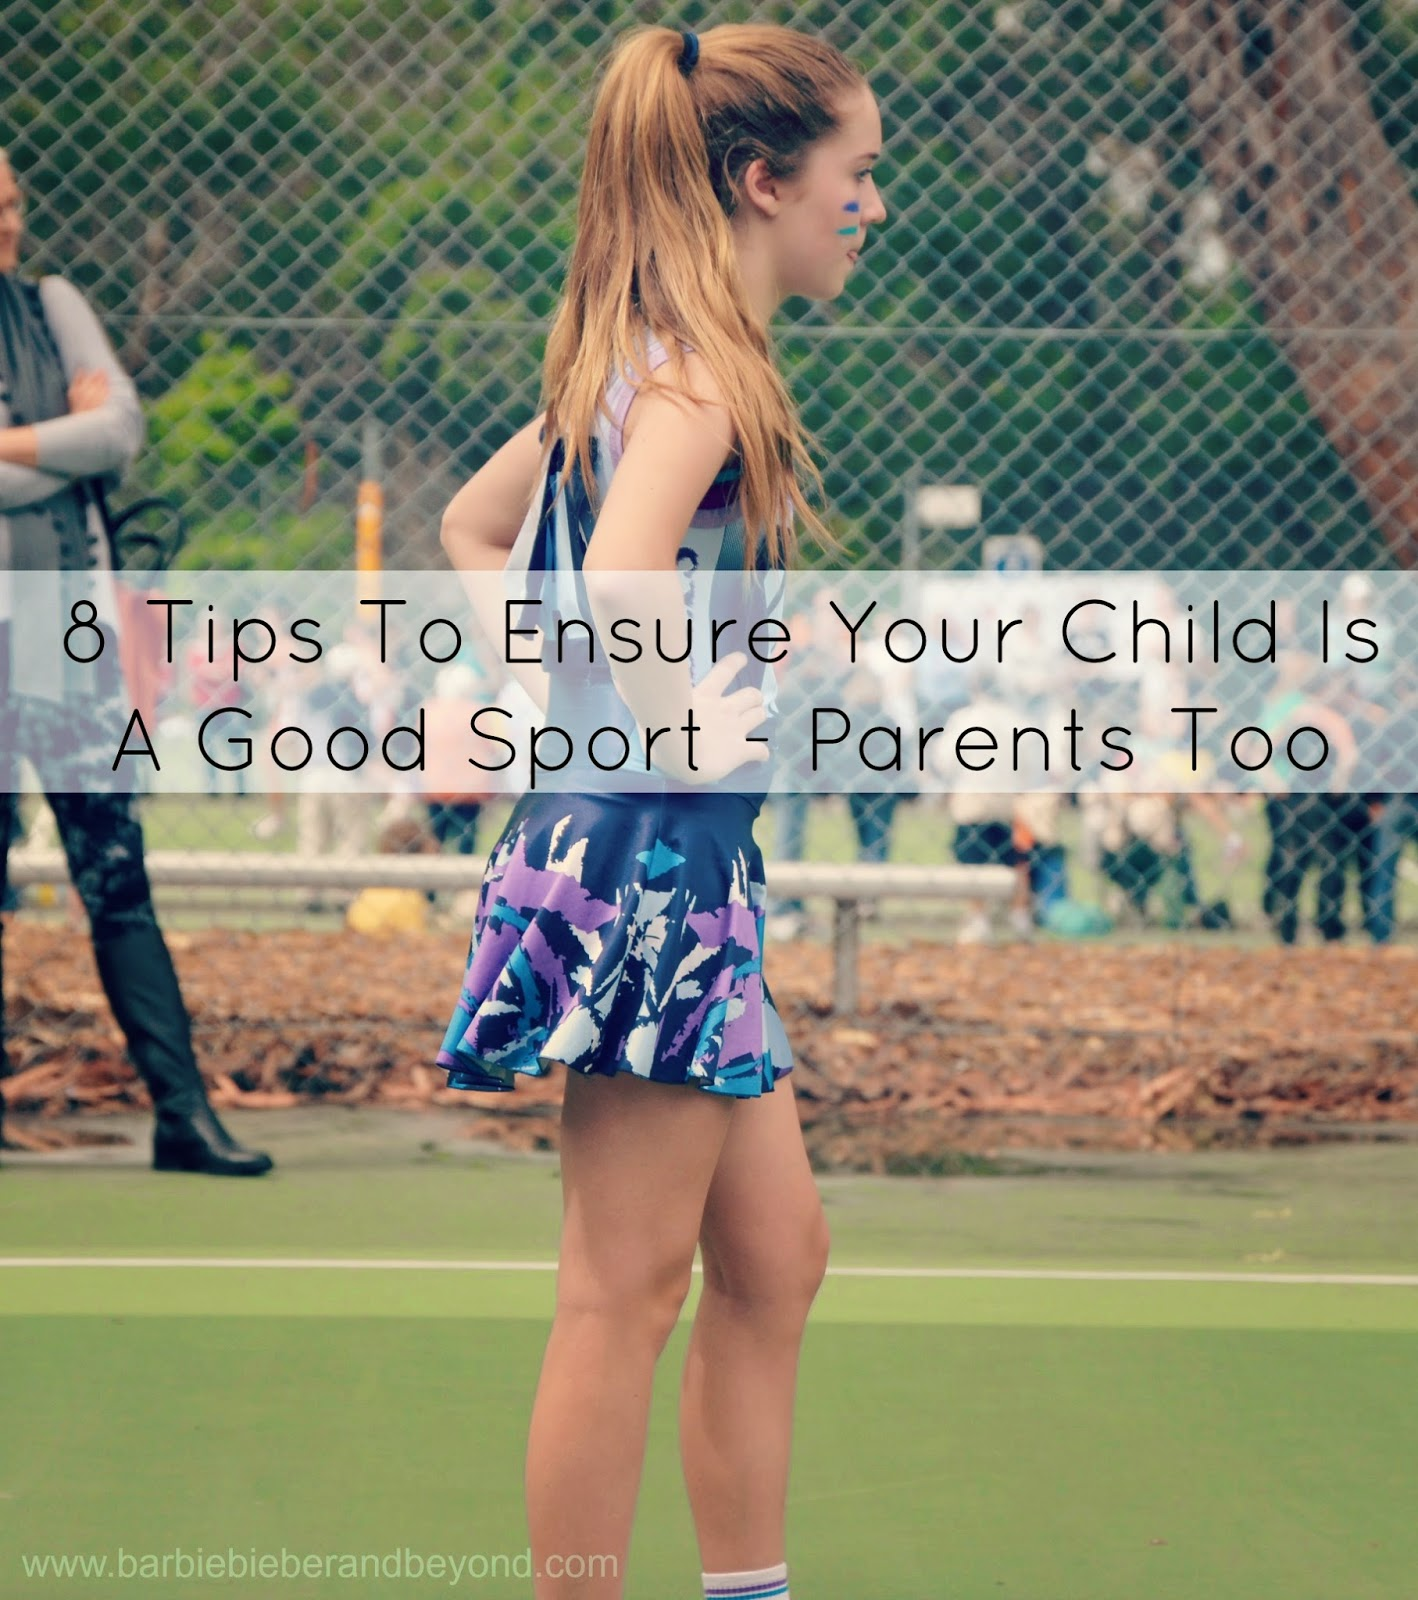 Tips To Ensure Your Child Is A Good Sport